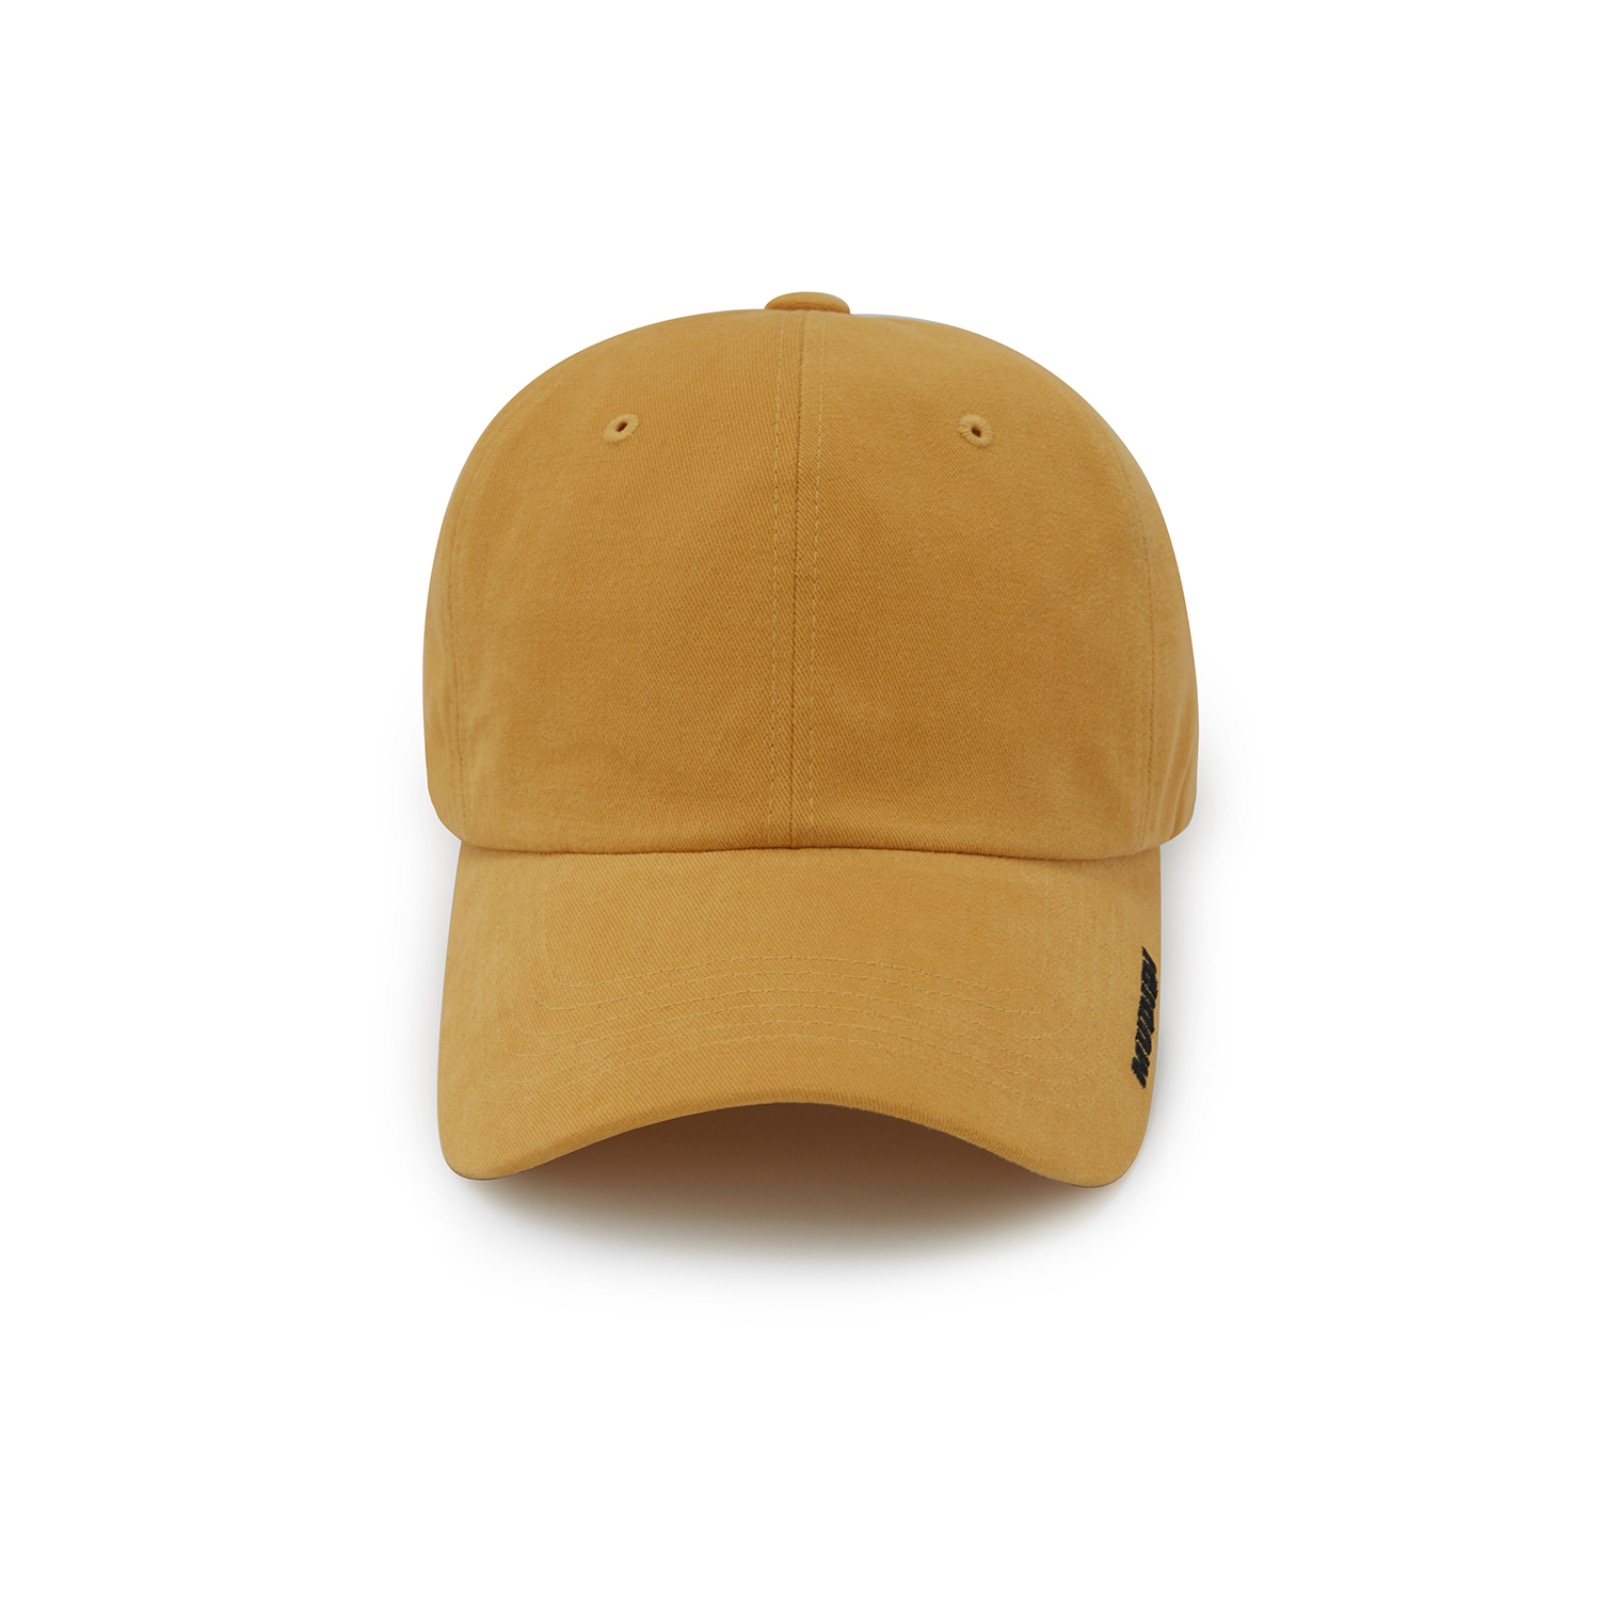 Mudidi basic ball cap 001 Yellow